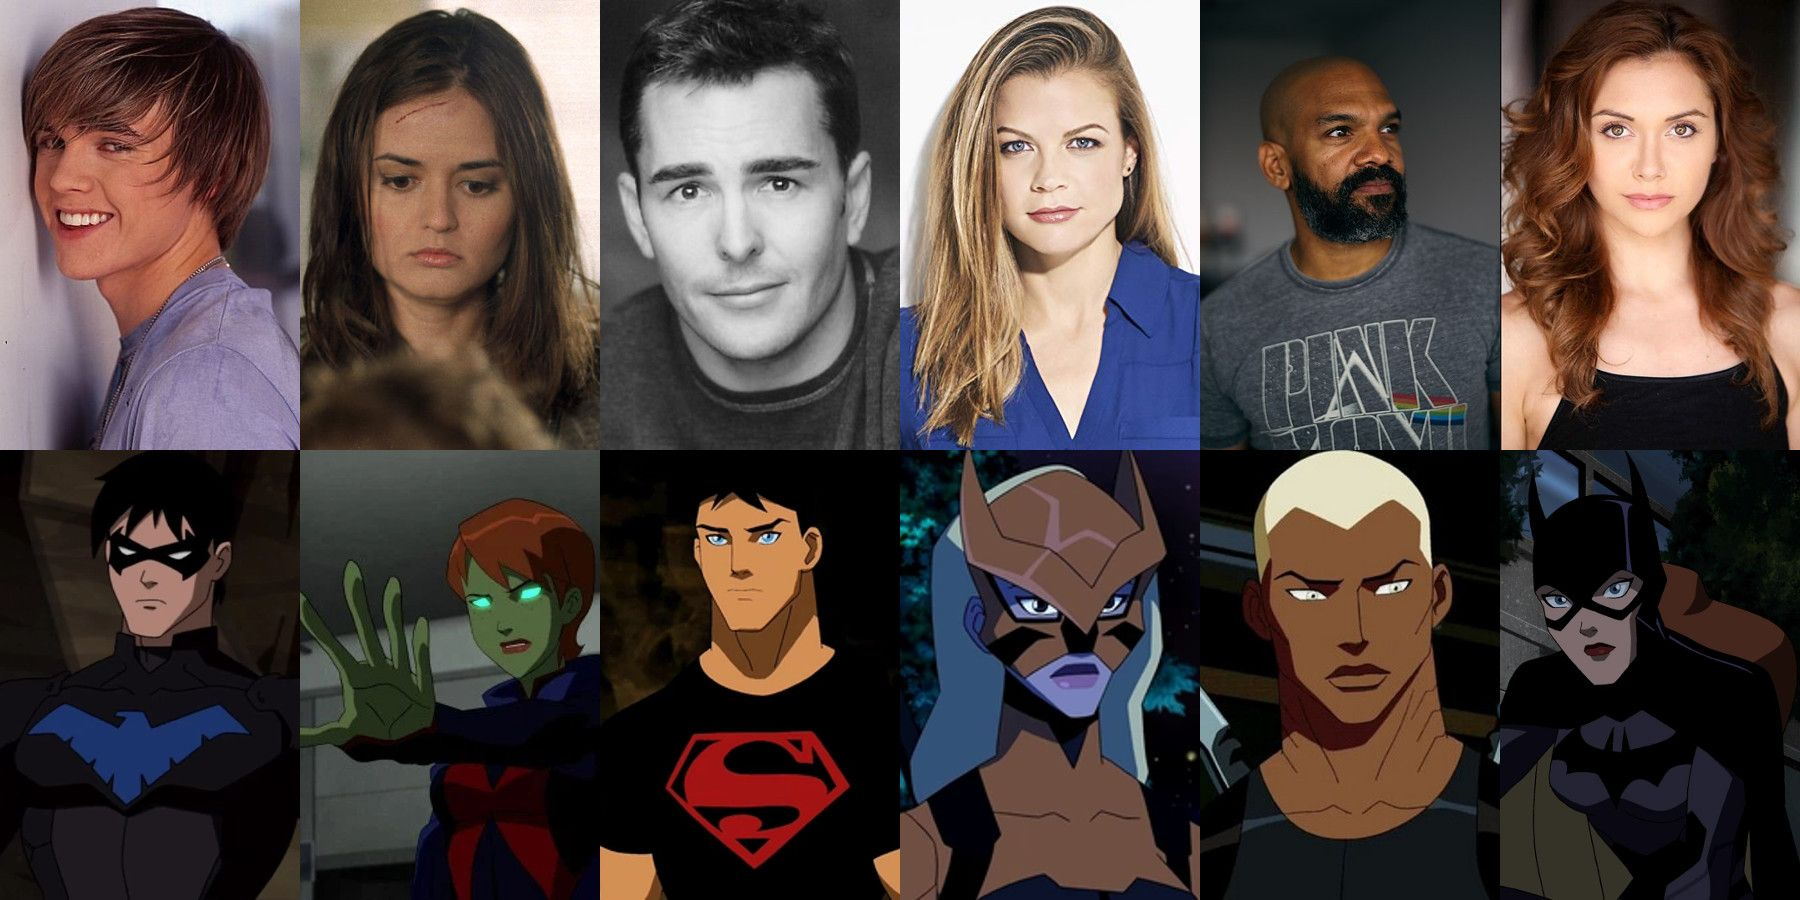 Young Justice: Outsiders Voice Cast & Character GuideYoung Justice Season 3 Characters